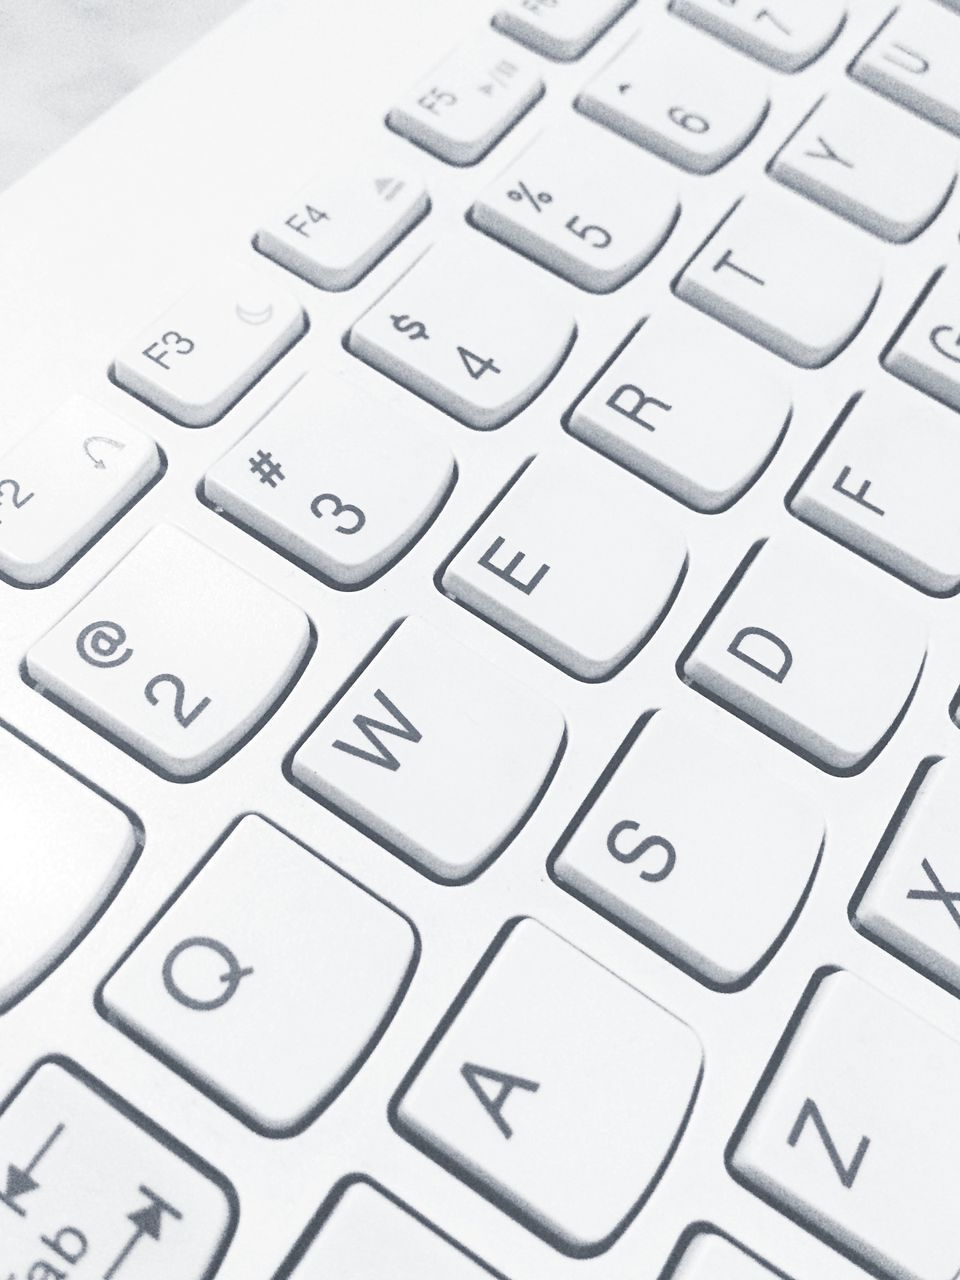 computer, keyboard, computer keyboard, technology, computer part, communication, letter, computer key, wireless technology, connection, computer equipment, laptop, close-up, no people, text, white color, internet, indoors, alphabet, full frame, keypad